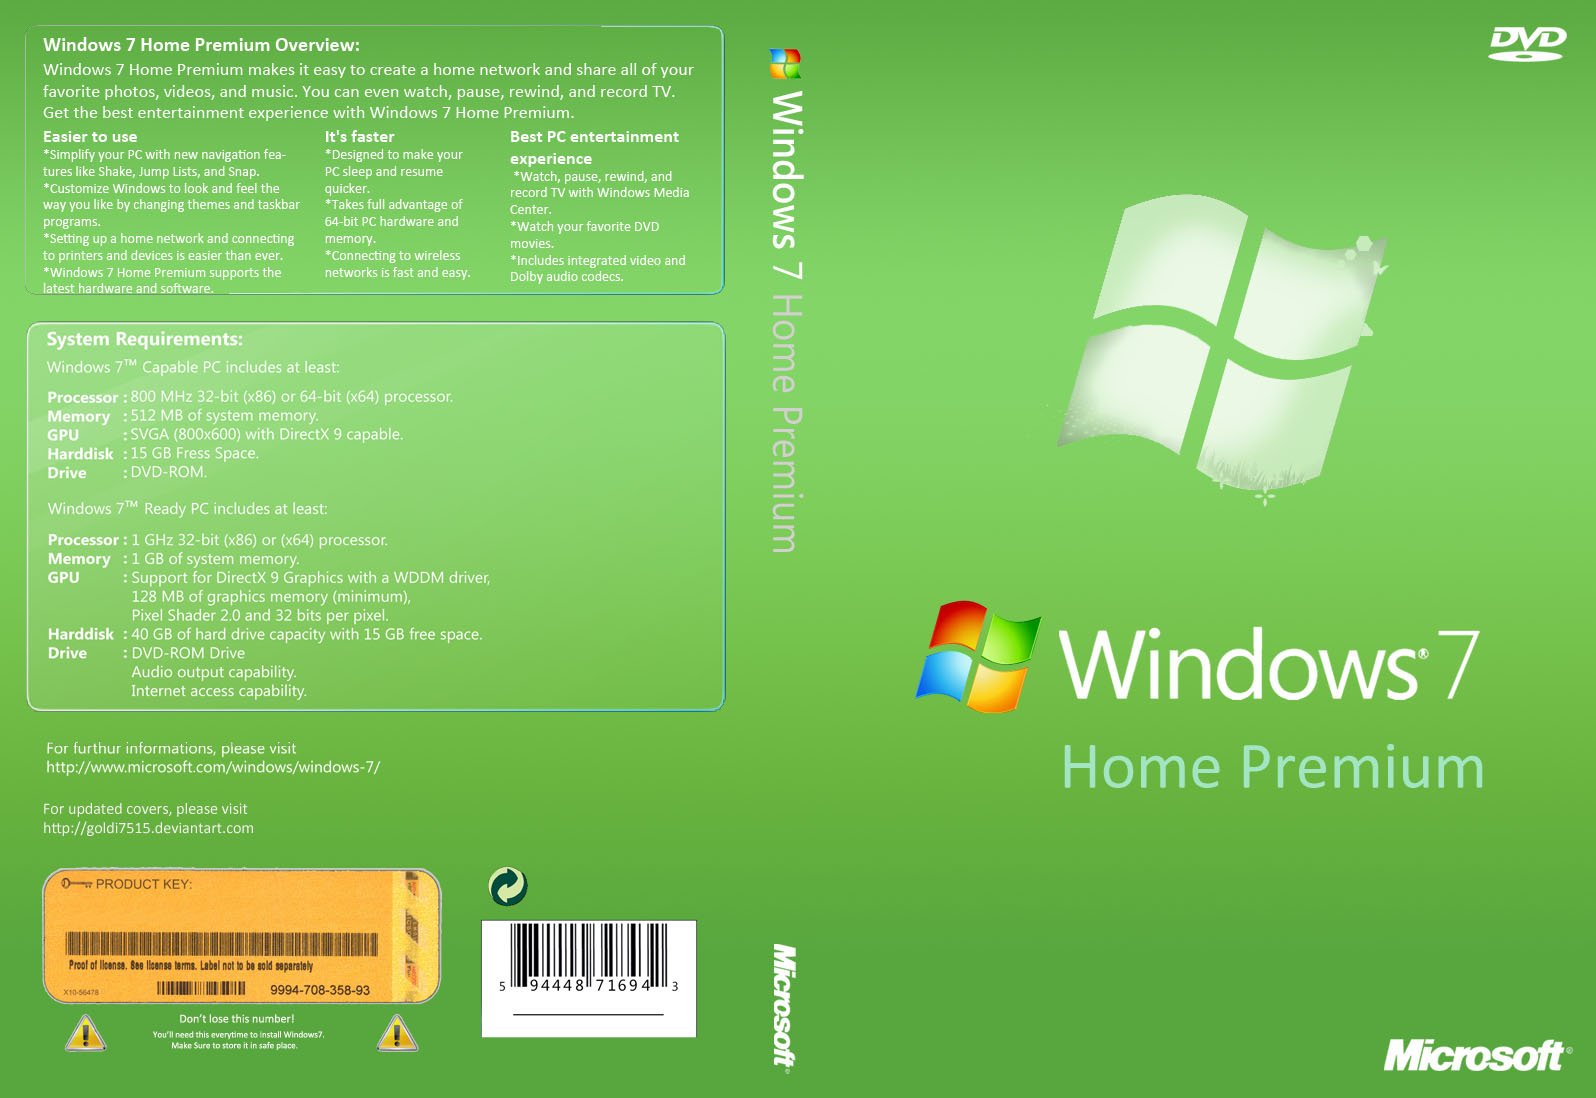 descargar windows 7 ultimate 32 bits espanol 1 link iso 2012